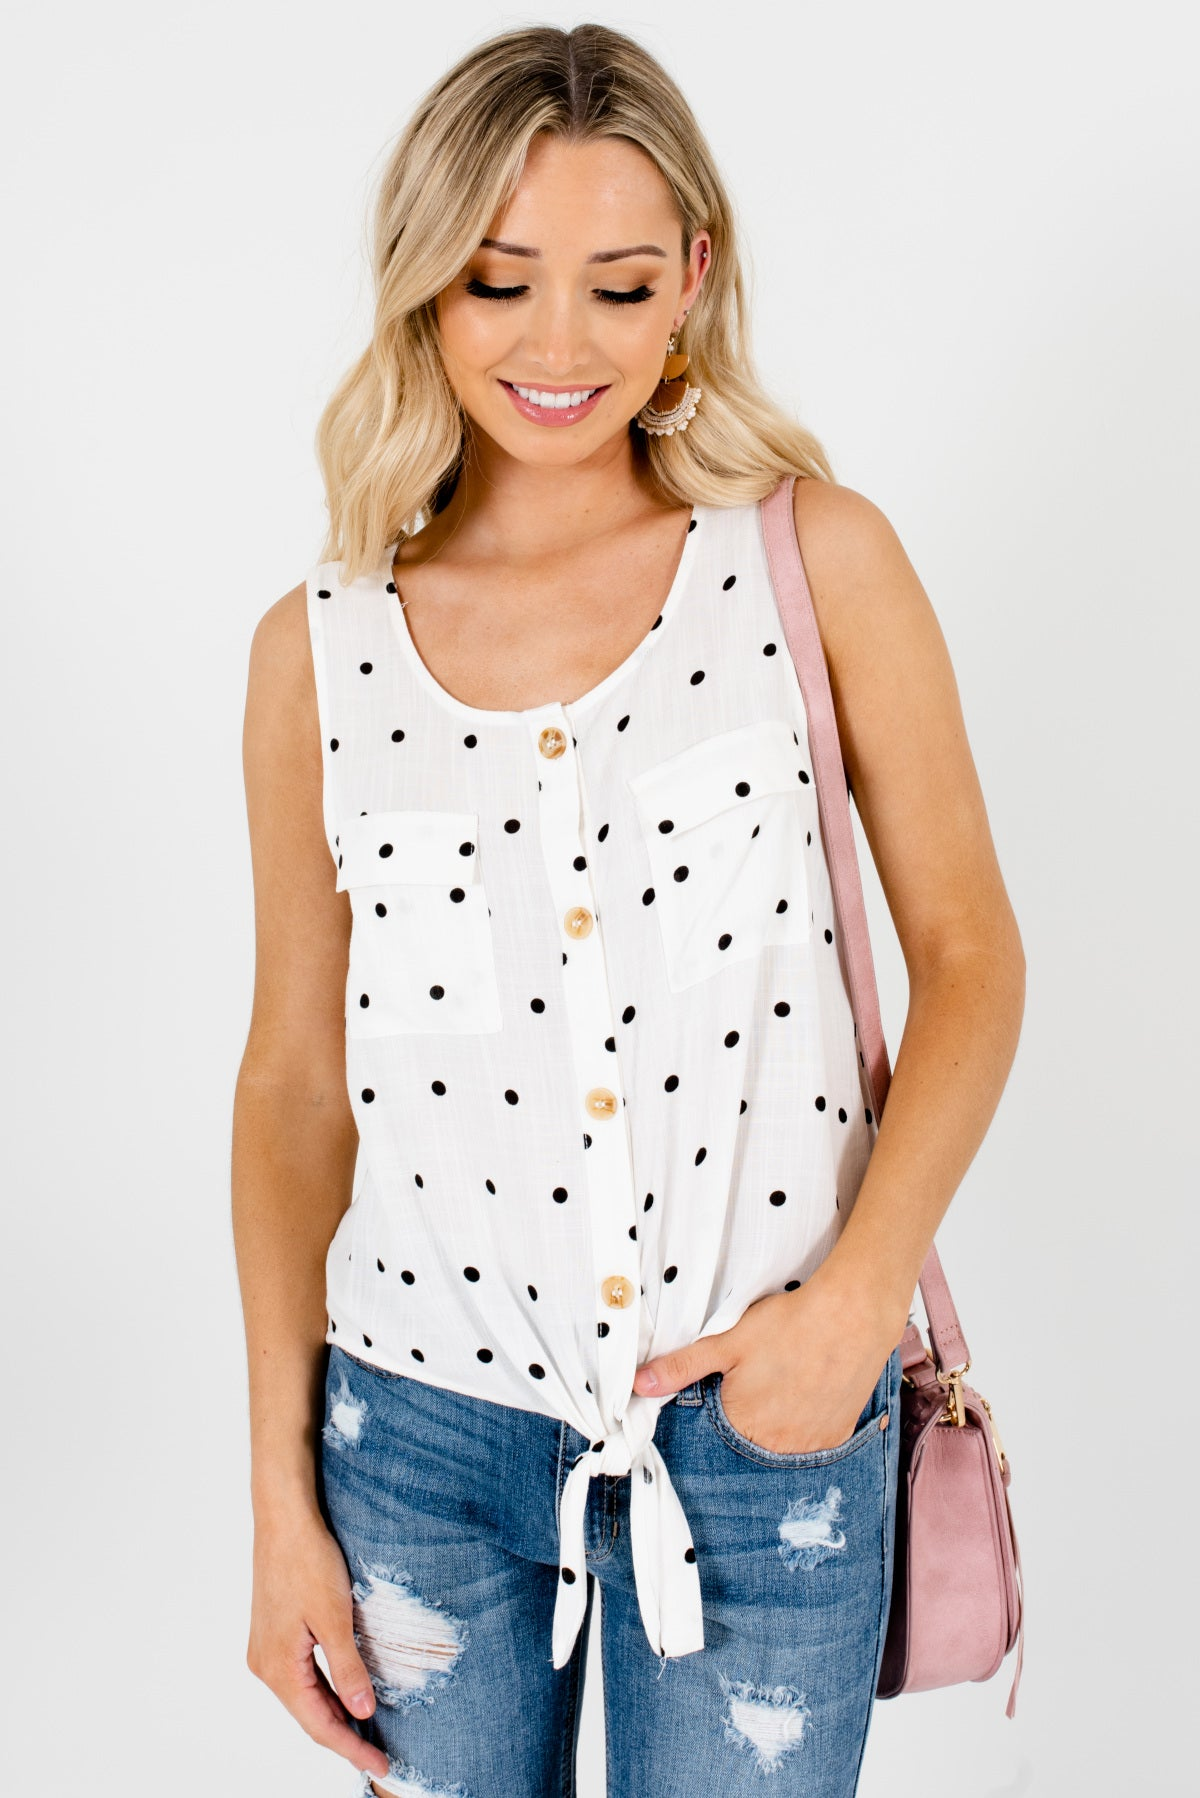 White and Black Polka Dot Patterned Boutique Tank Tops for Women